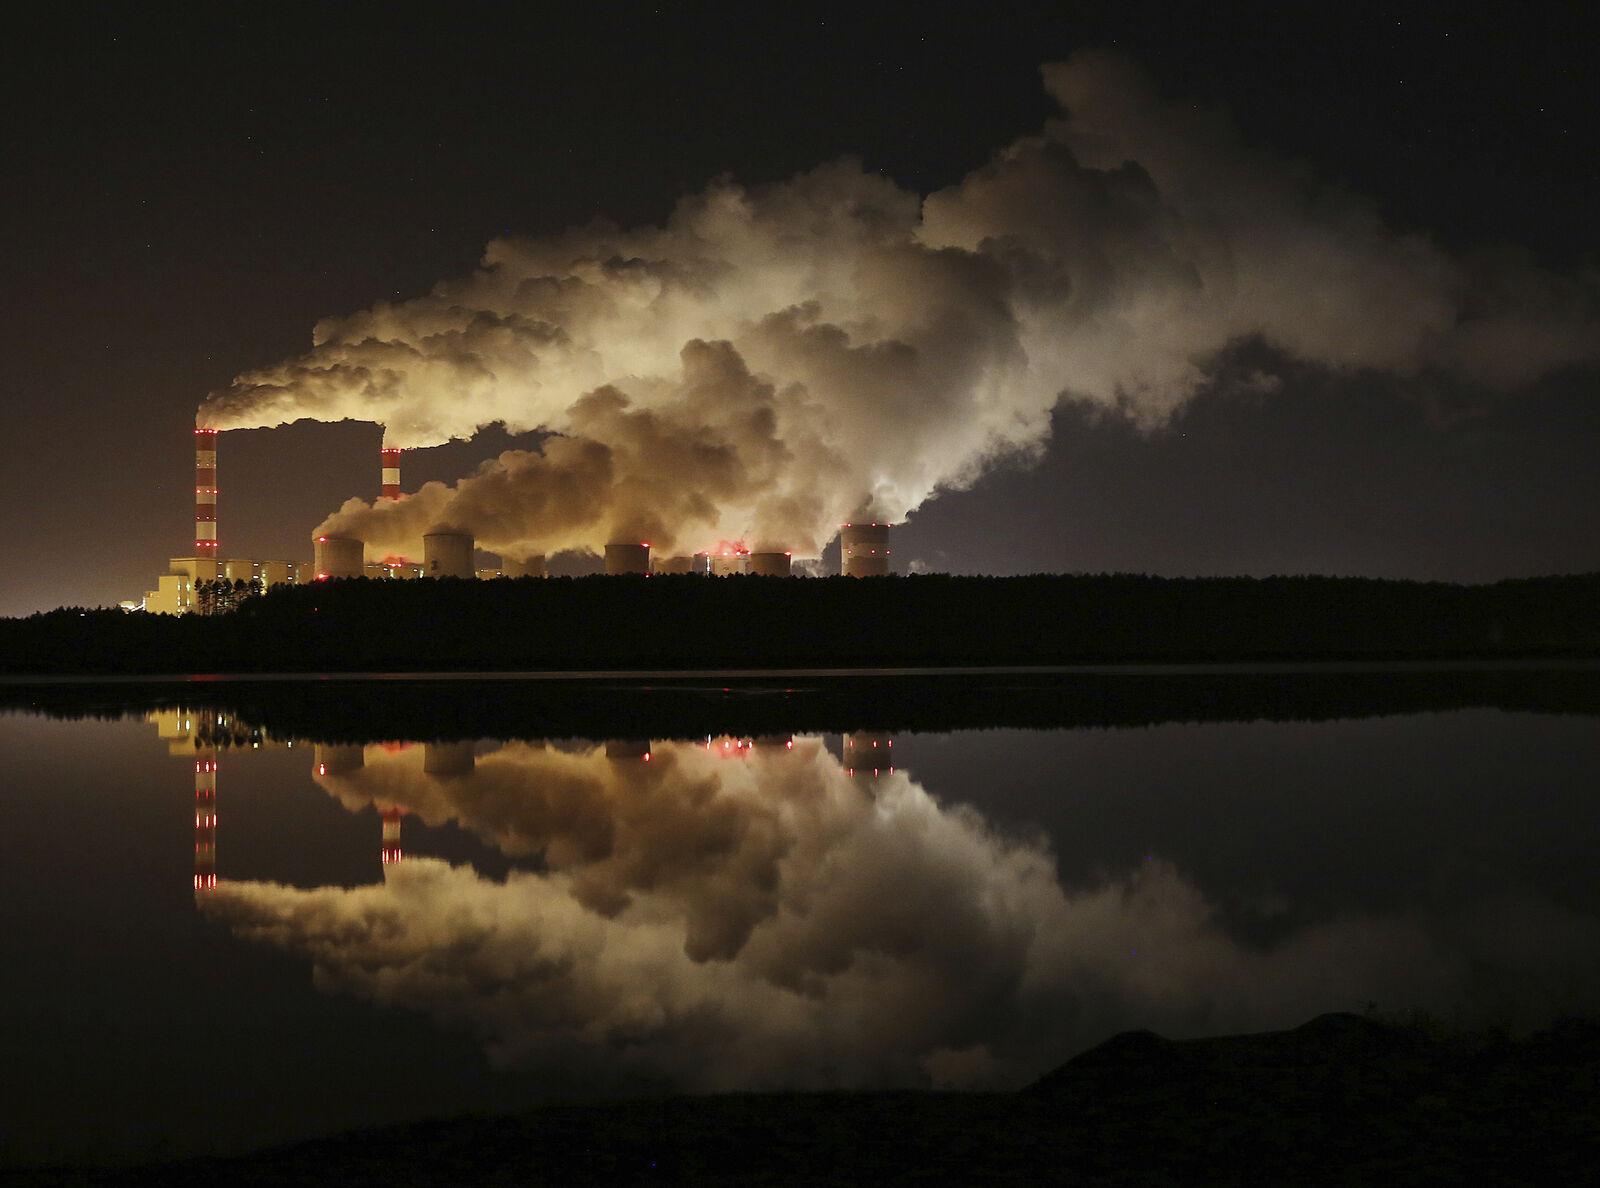 FILE - In this Wednesday, Nov. 28, 2018 file photo, clouds of smoke over Europe's largest lignite power plant in Belchatow, central Poland. Greenhouse gas emissions in the European Union have been reduced by 24% compared to 1990 levels, according to the bloc's annual climate report. (AP Photo/Czarek Sokolowski, file)